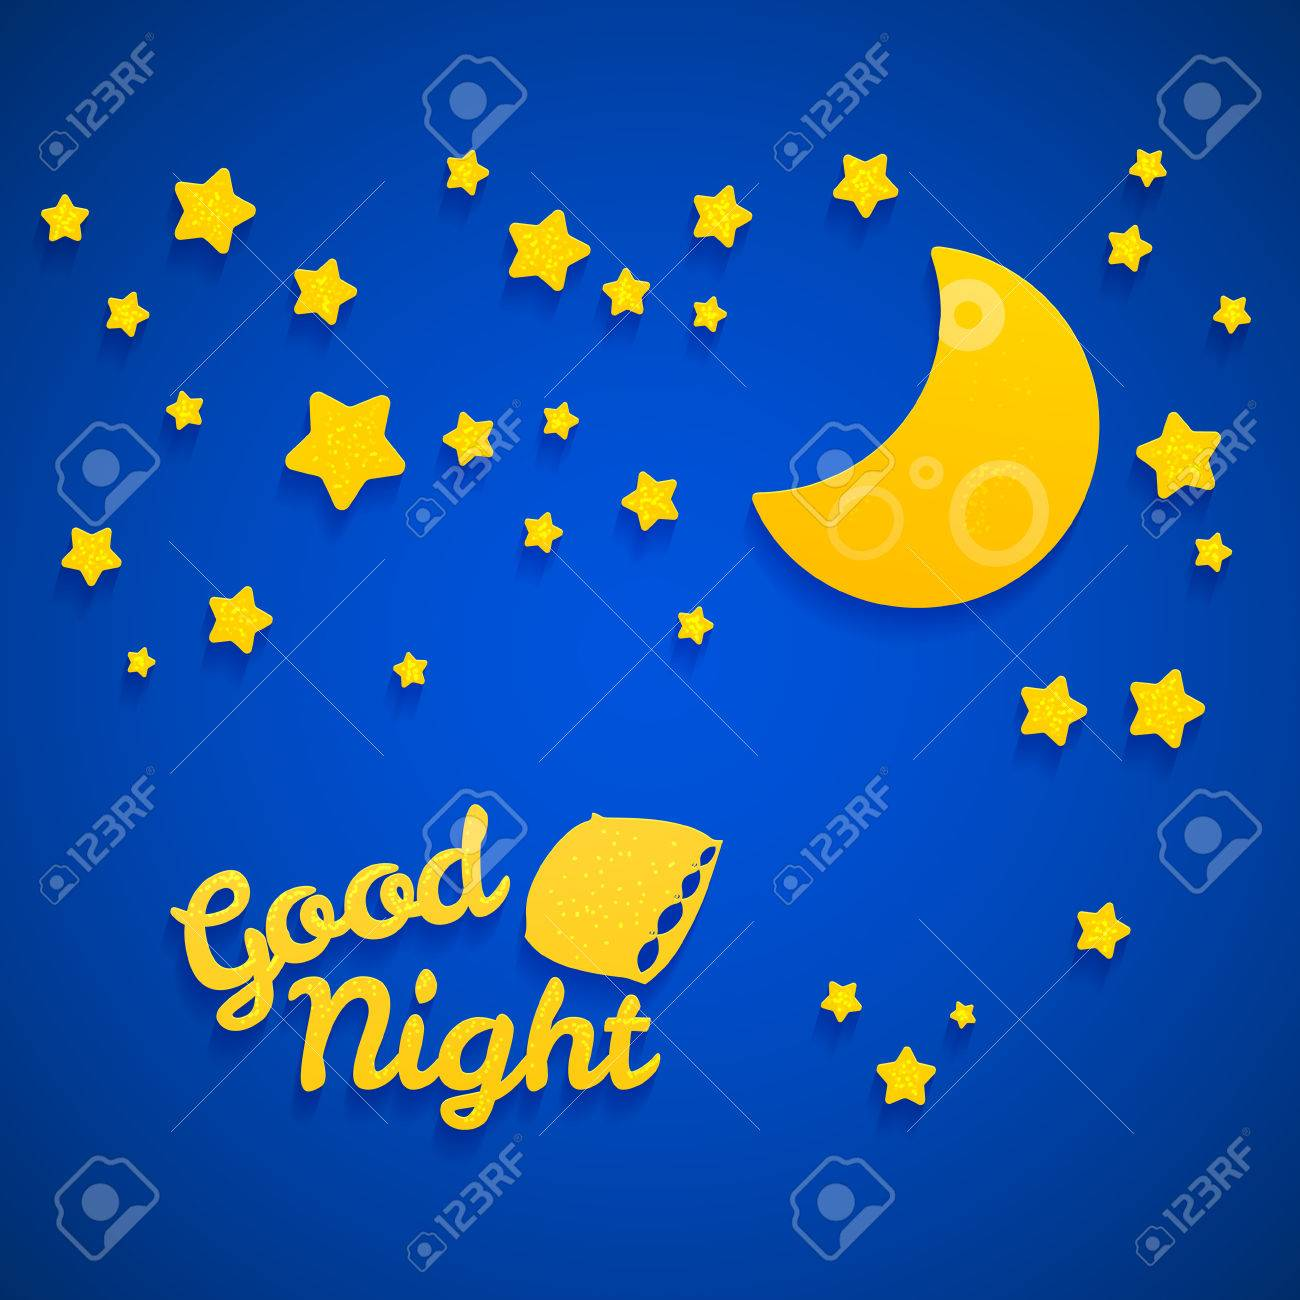 Kids at night with moon royalty free stock photography image - Good Night Bed Time Illustration For Children Stars Moon Pillow And Inscription